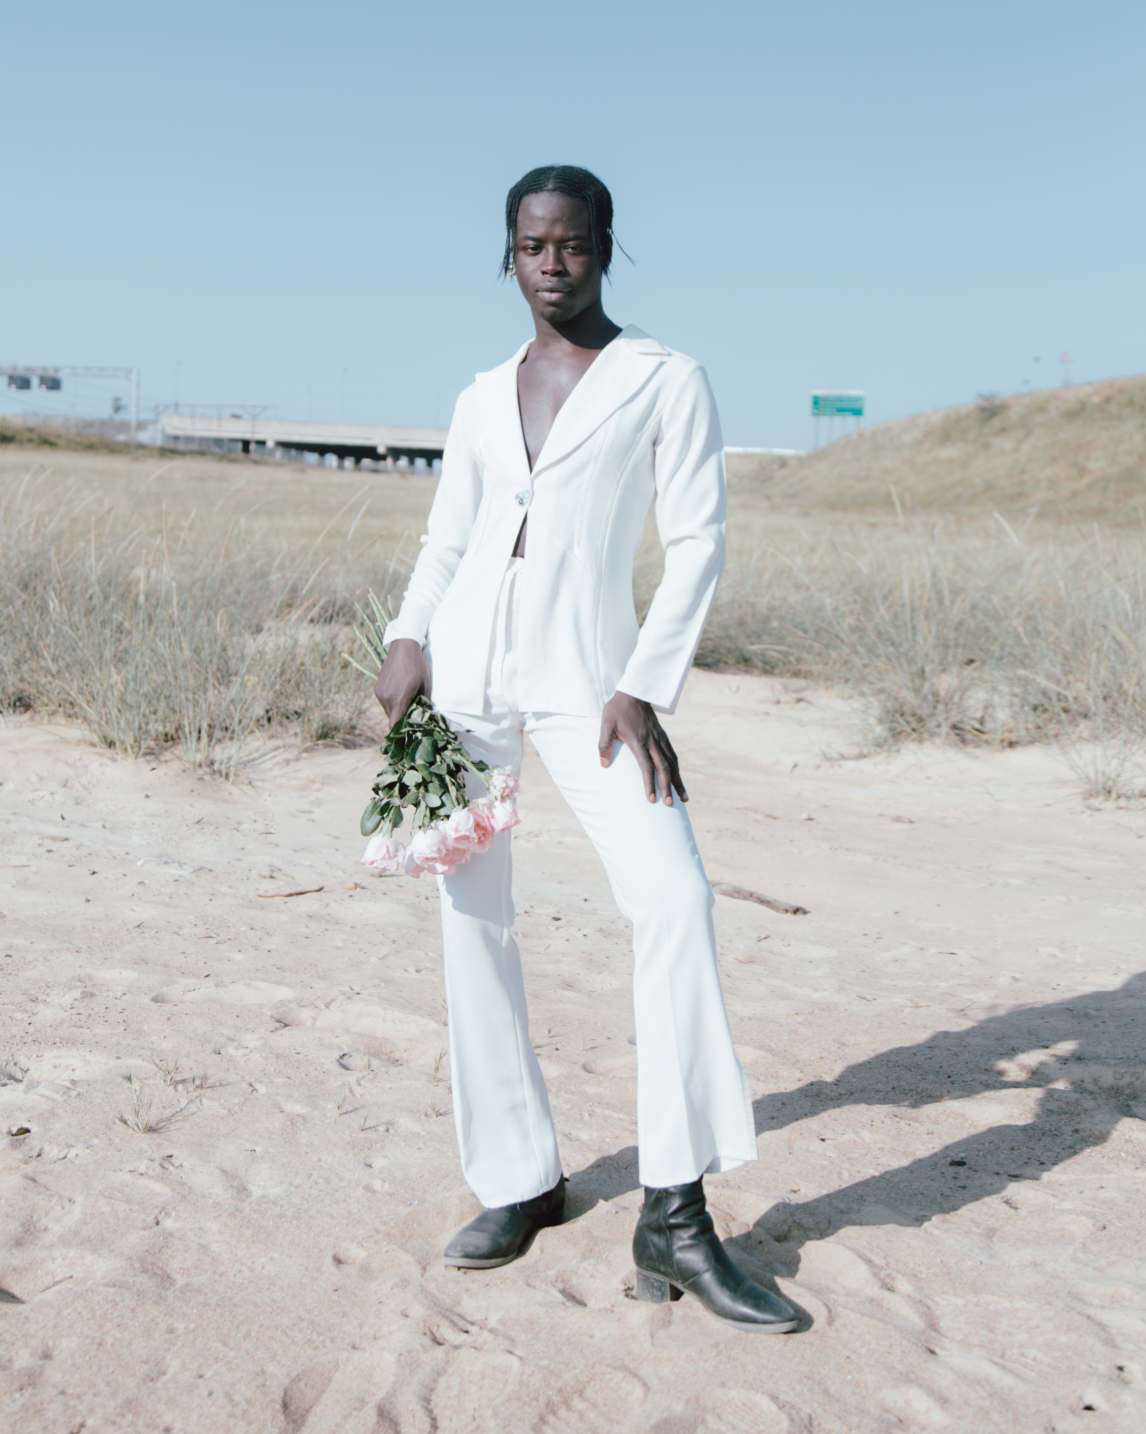 Ib Kamara's portraits of Black possibility - Photography by  - Kristin-Lee Moolman